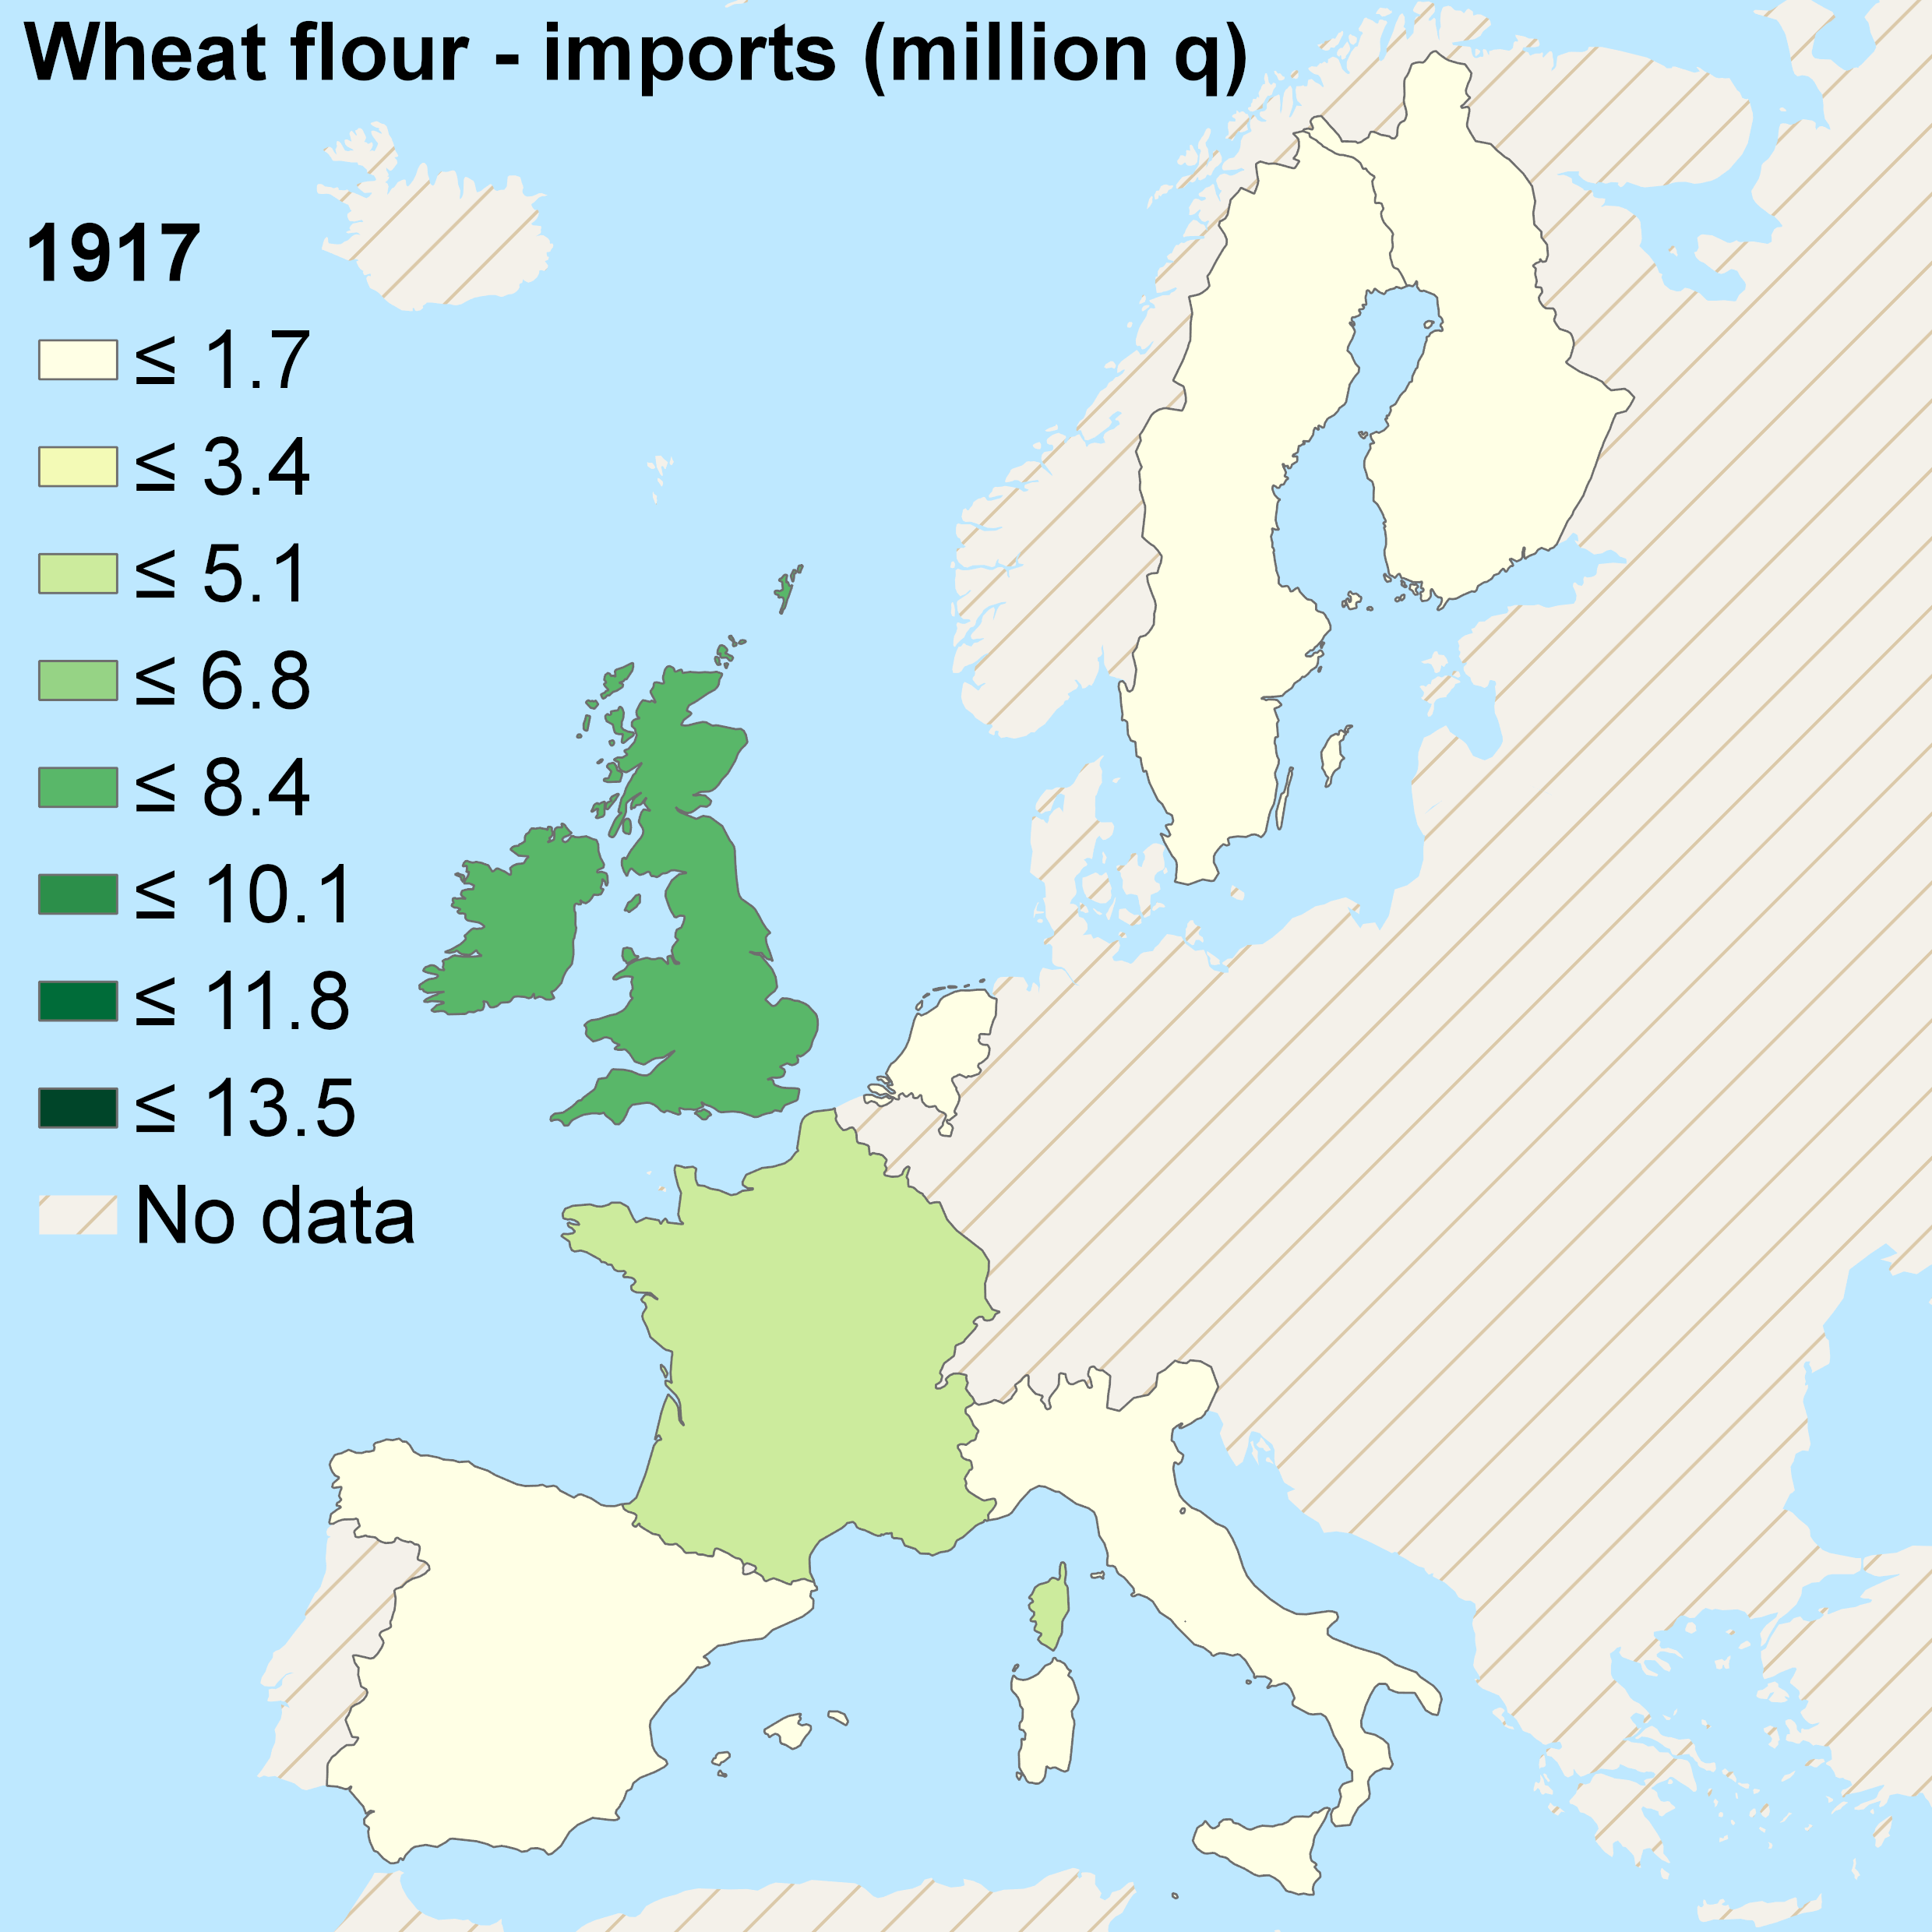 wheat-flour-imports-1917-v2